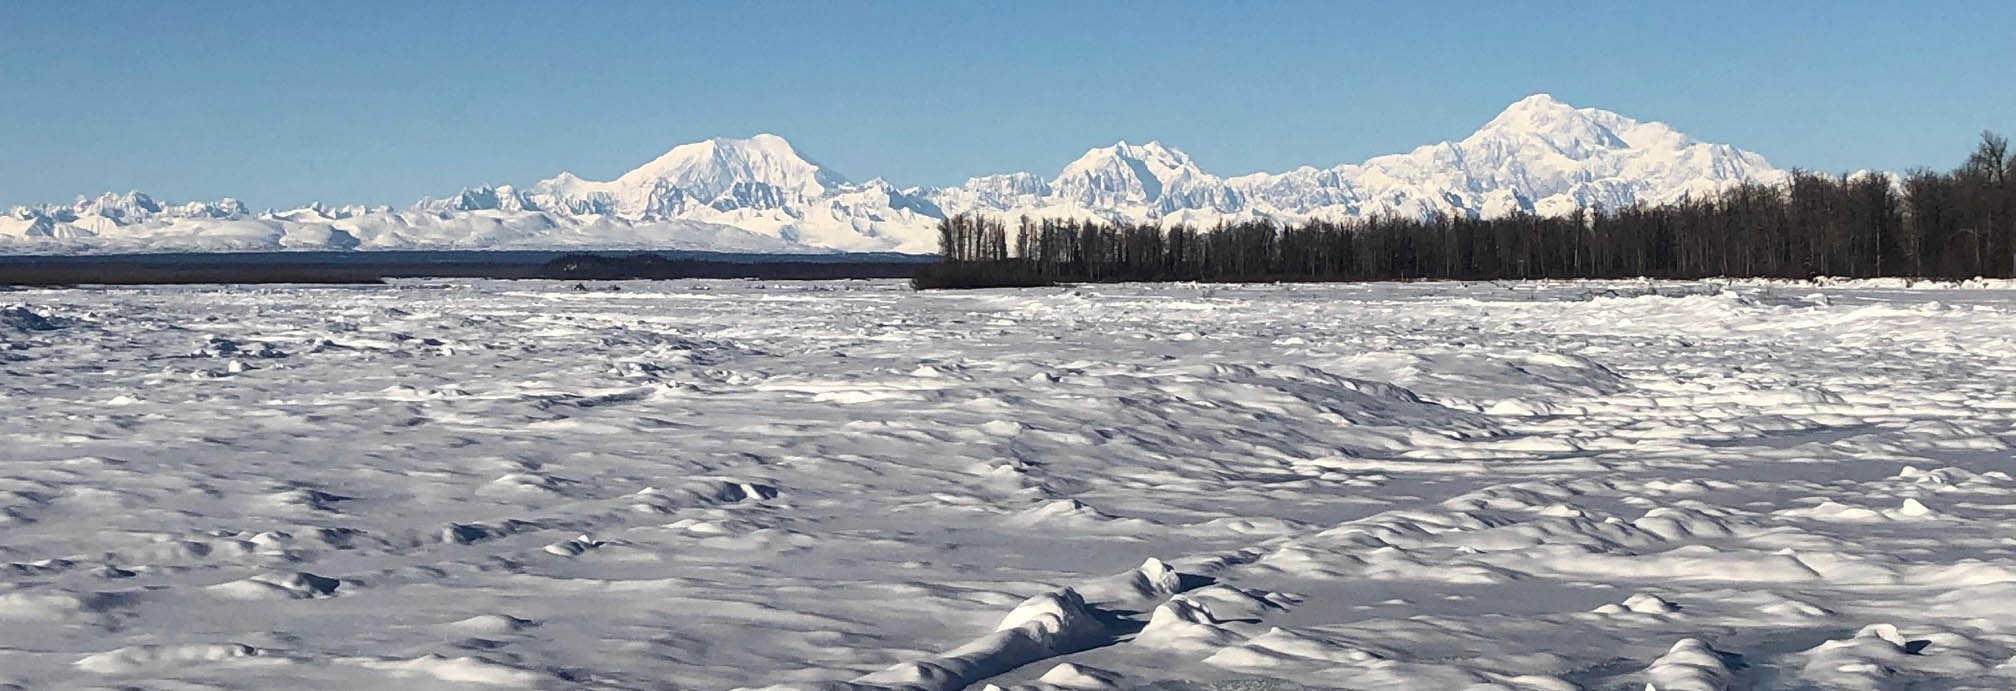 A view of Denali from the junction of the Talkeetna and Susitna Rivers,  the traditional land of the Dena'ina.